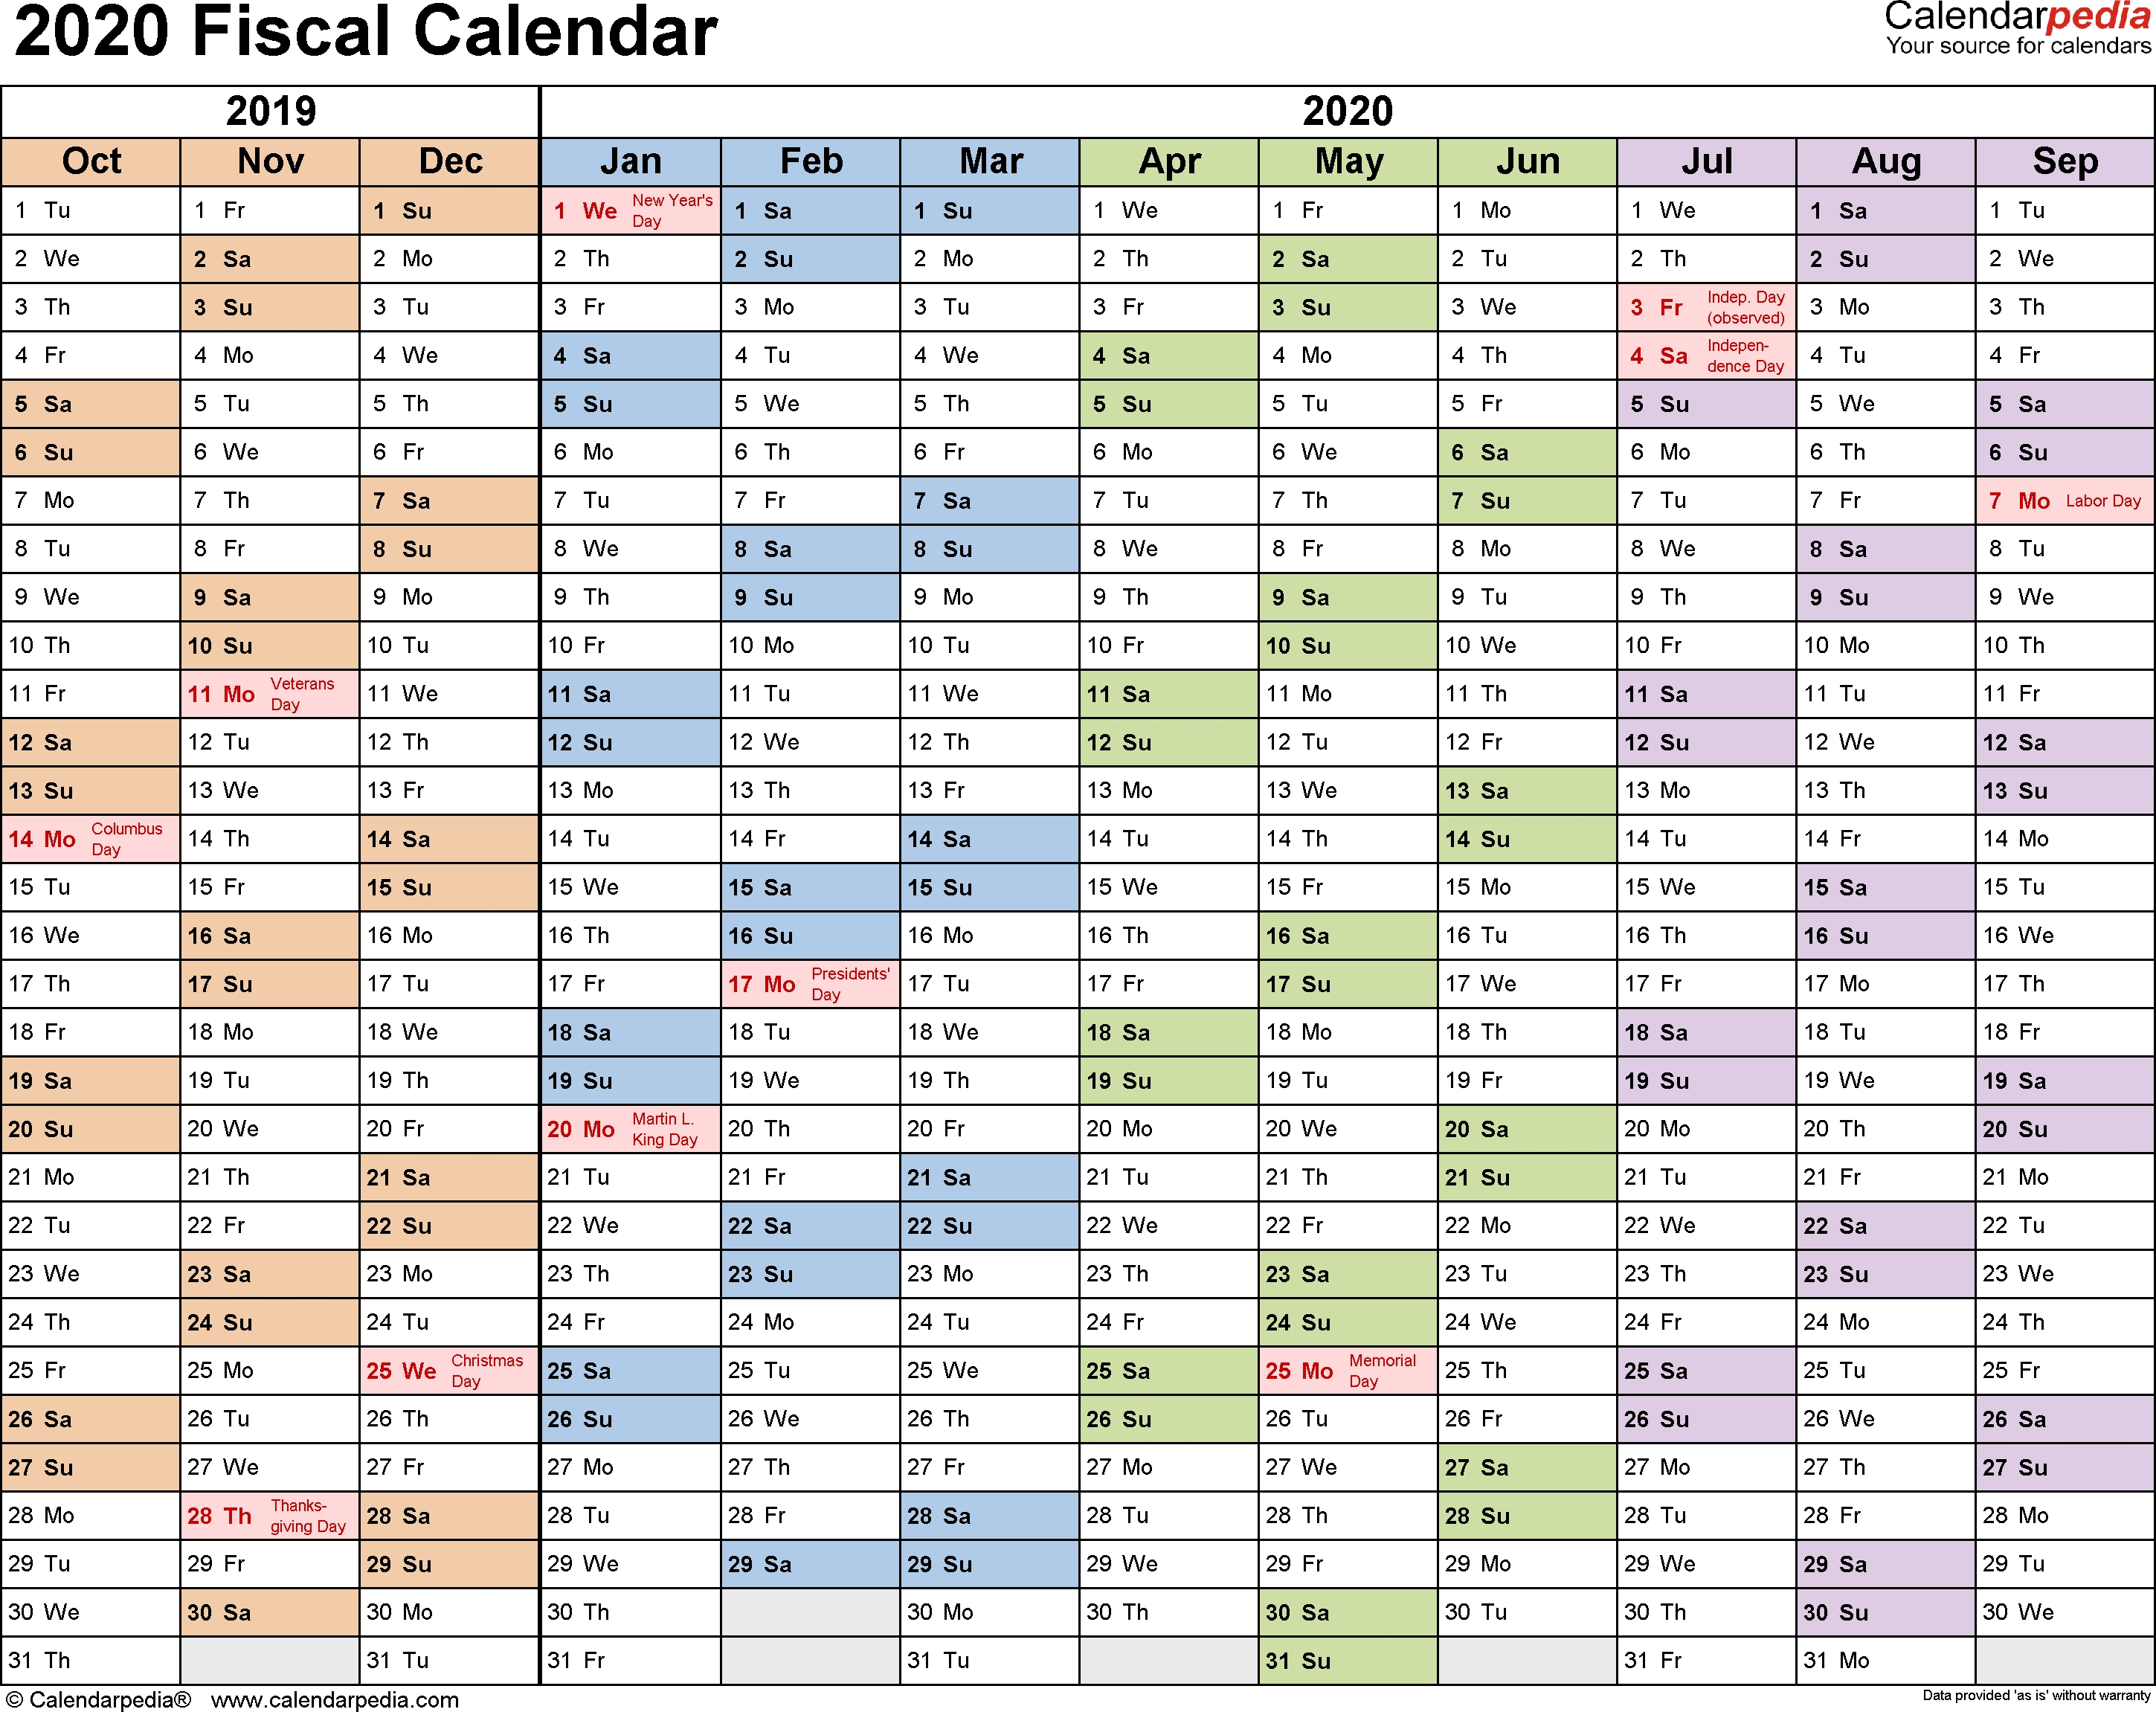 Fiscal Calendars 2020 As Free Printable Word Templates  365 Day Julian Calendar 2020